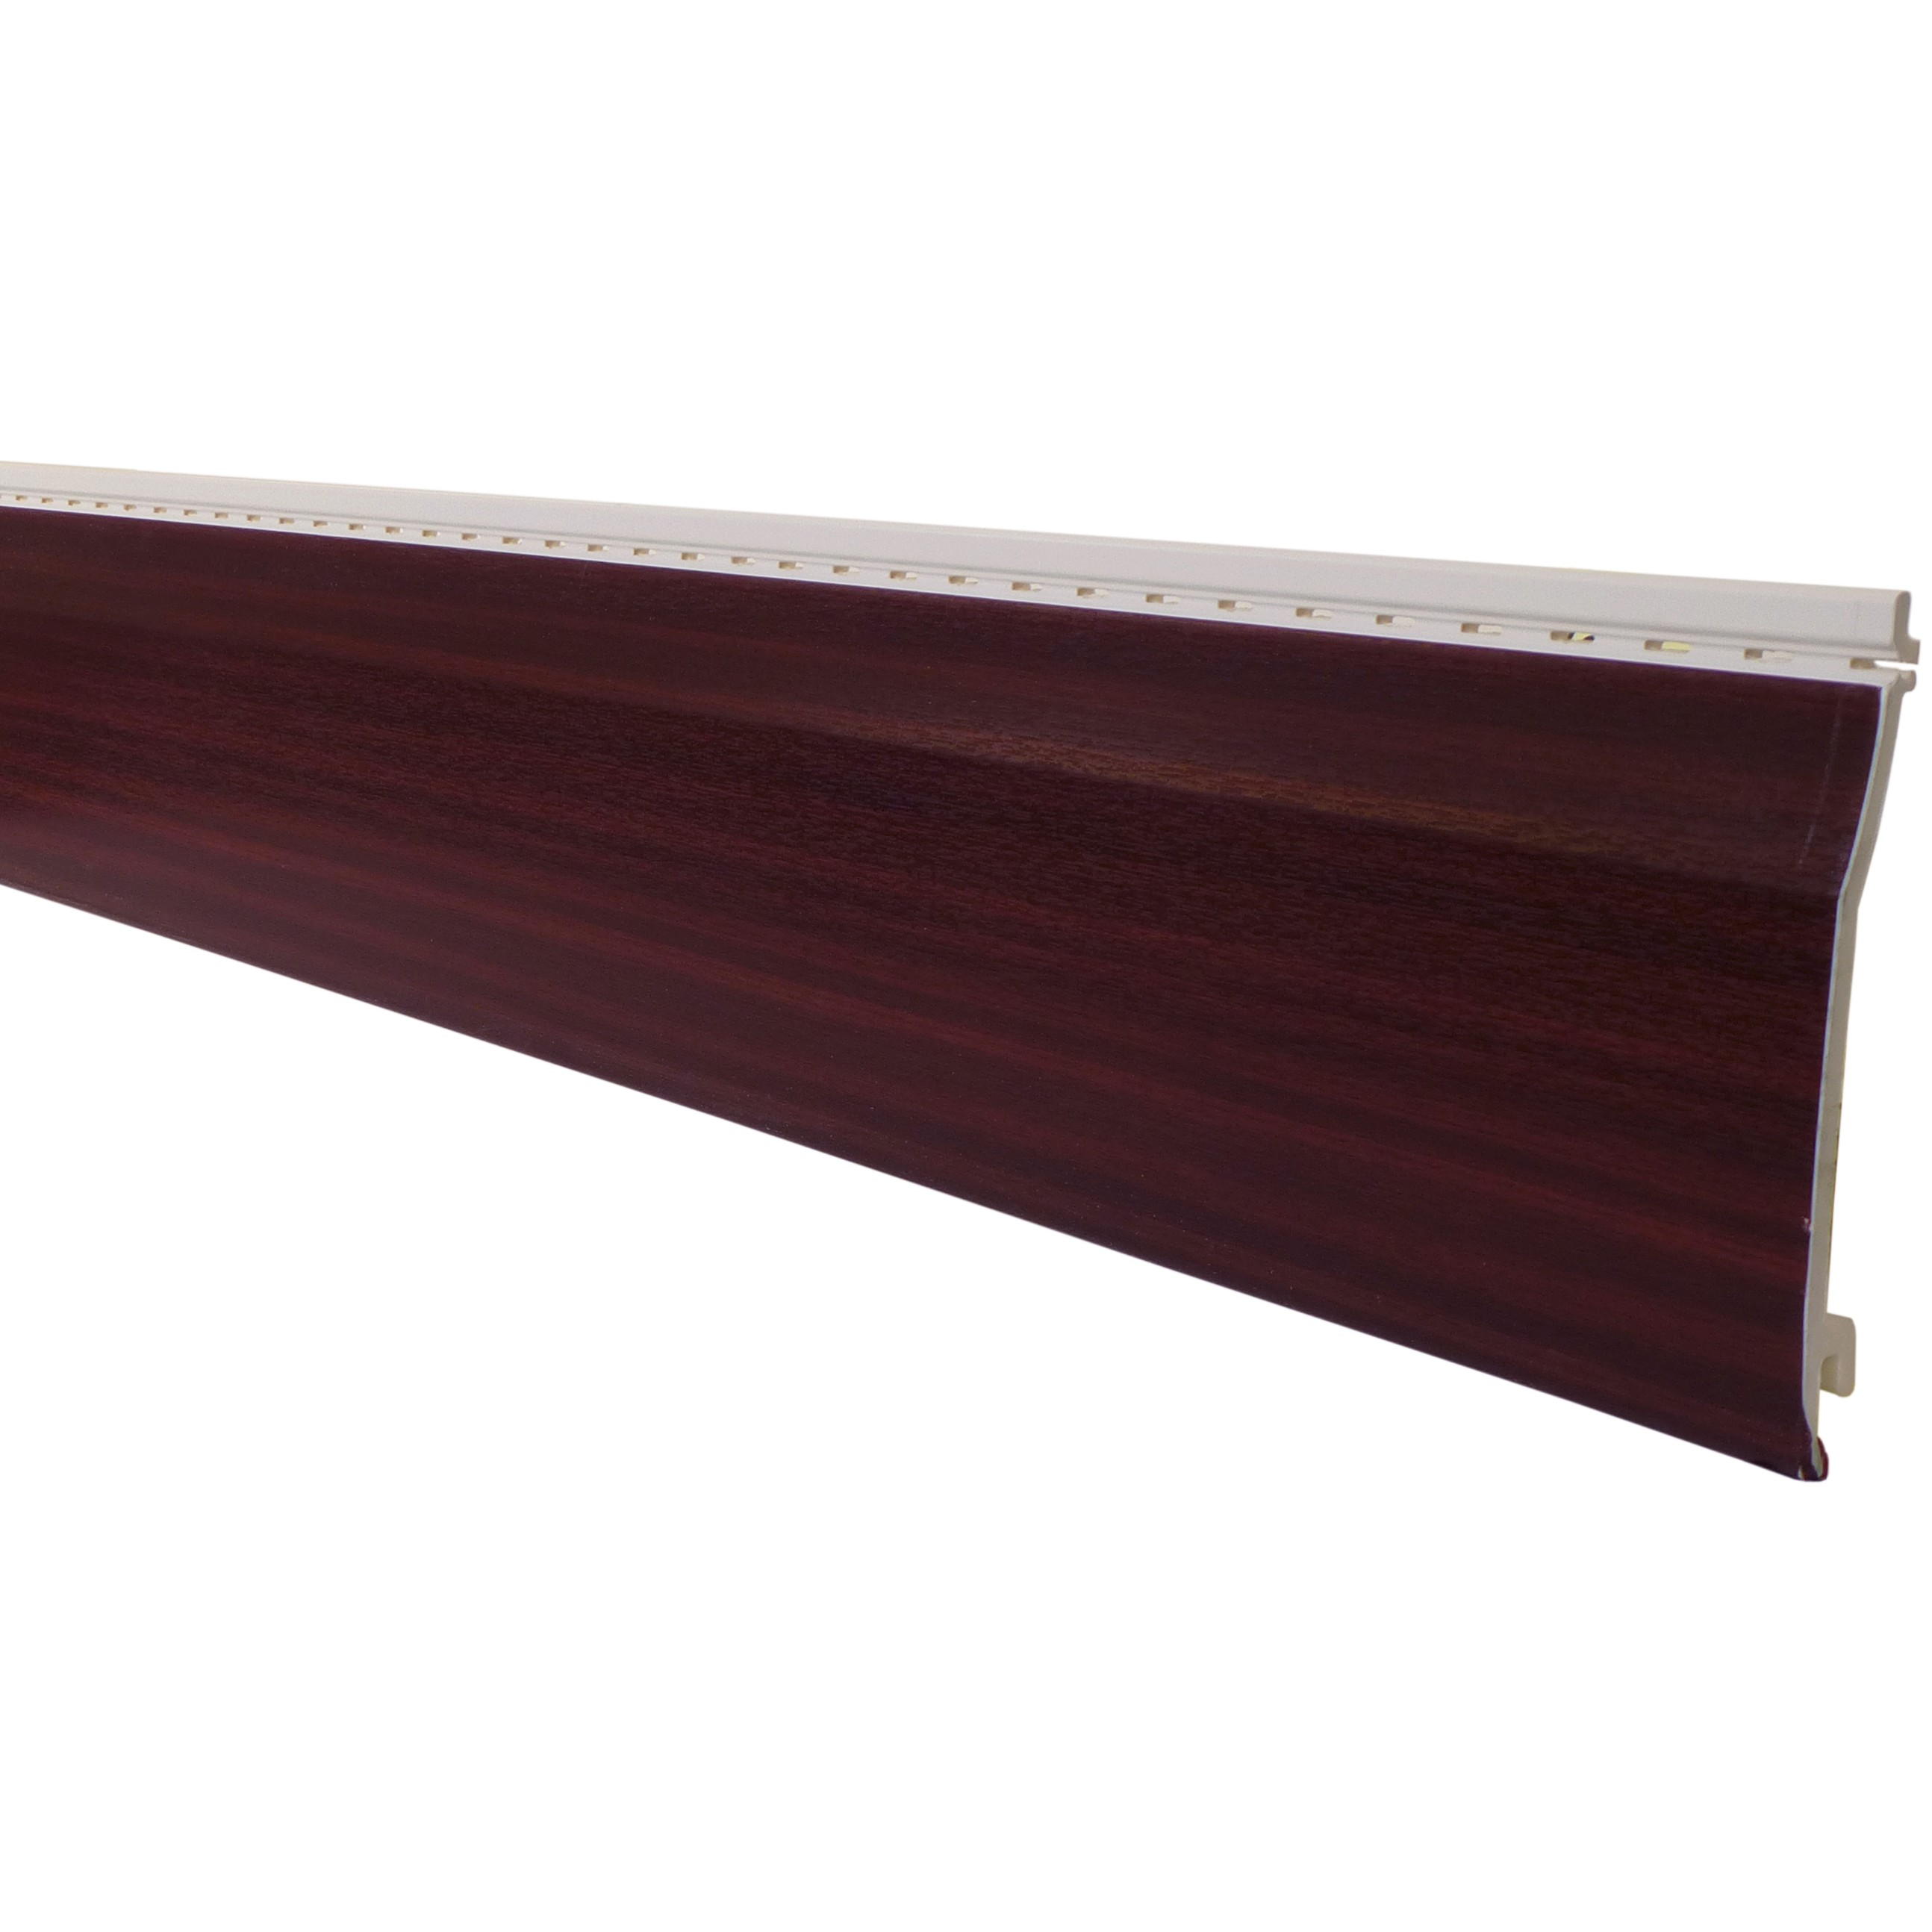 FC151WGM Freefoam Shiplap Cladding - Woodgrain Mahogany